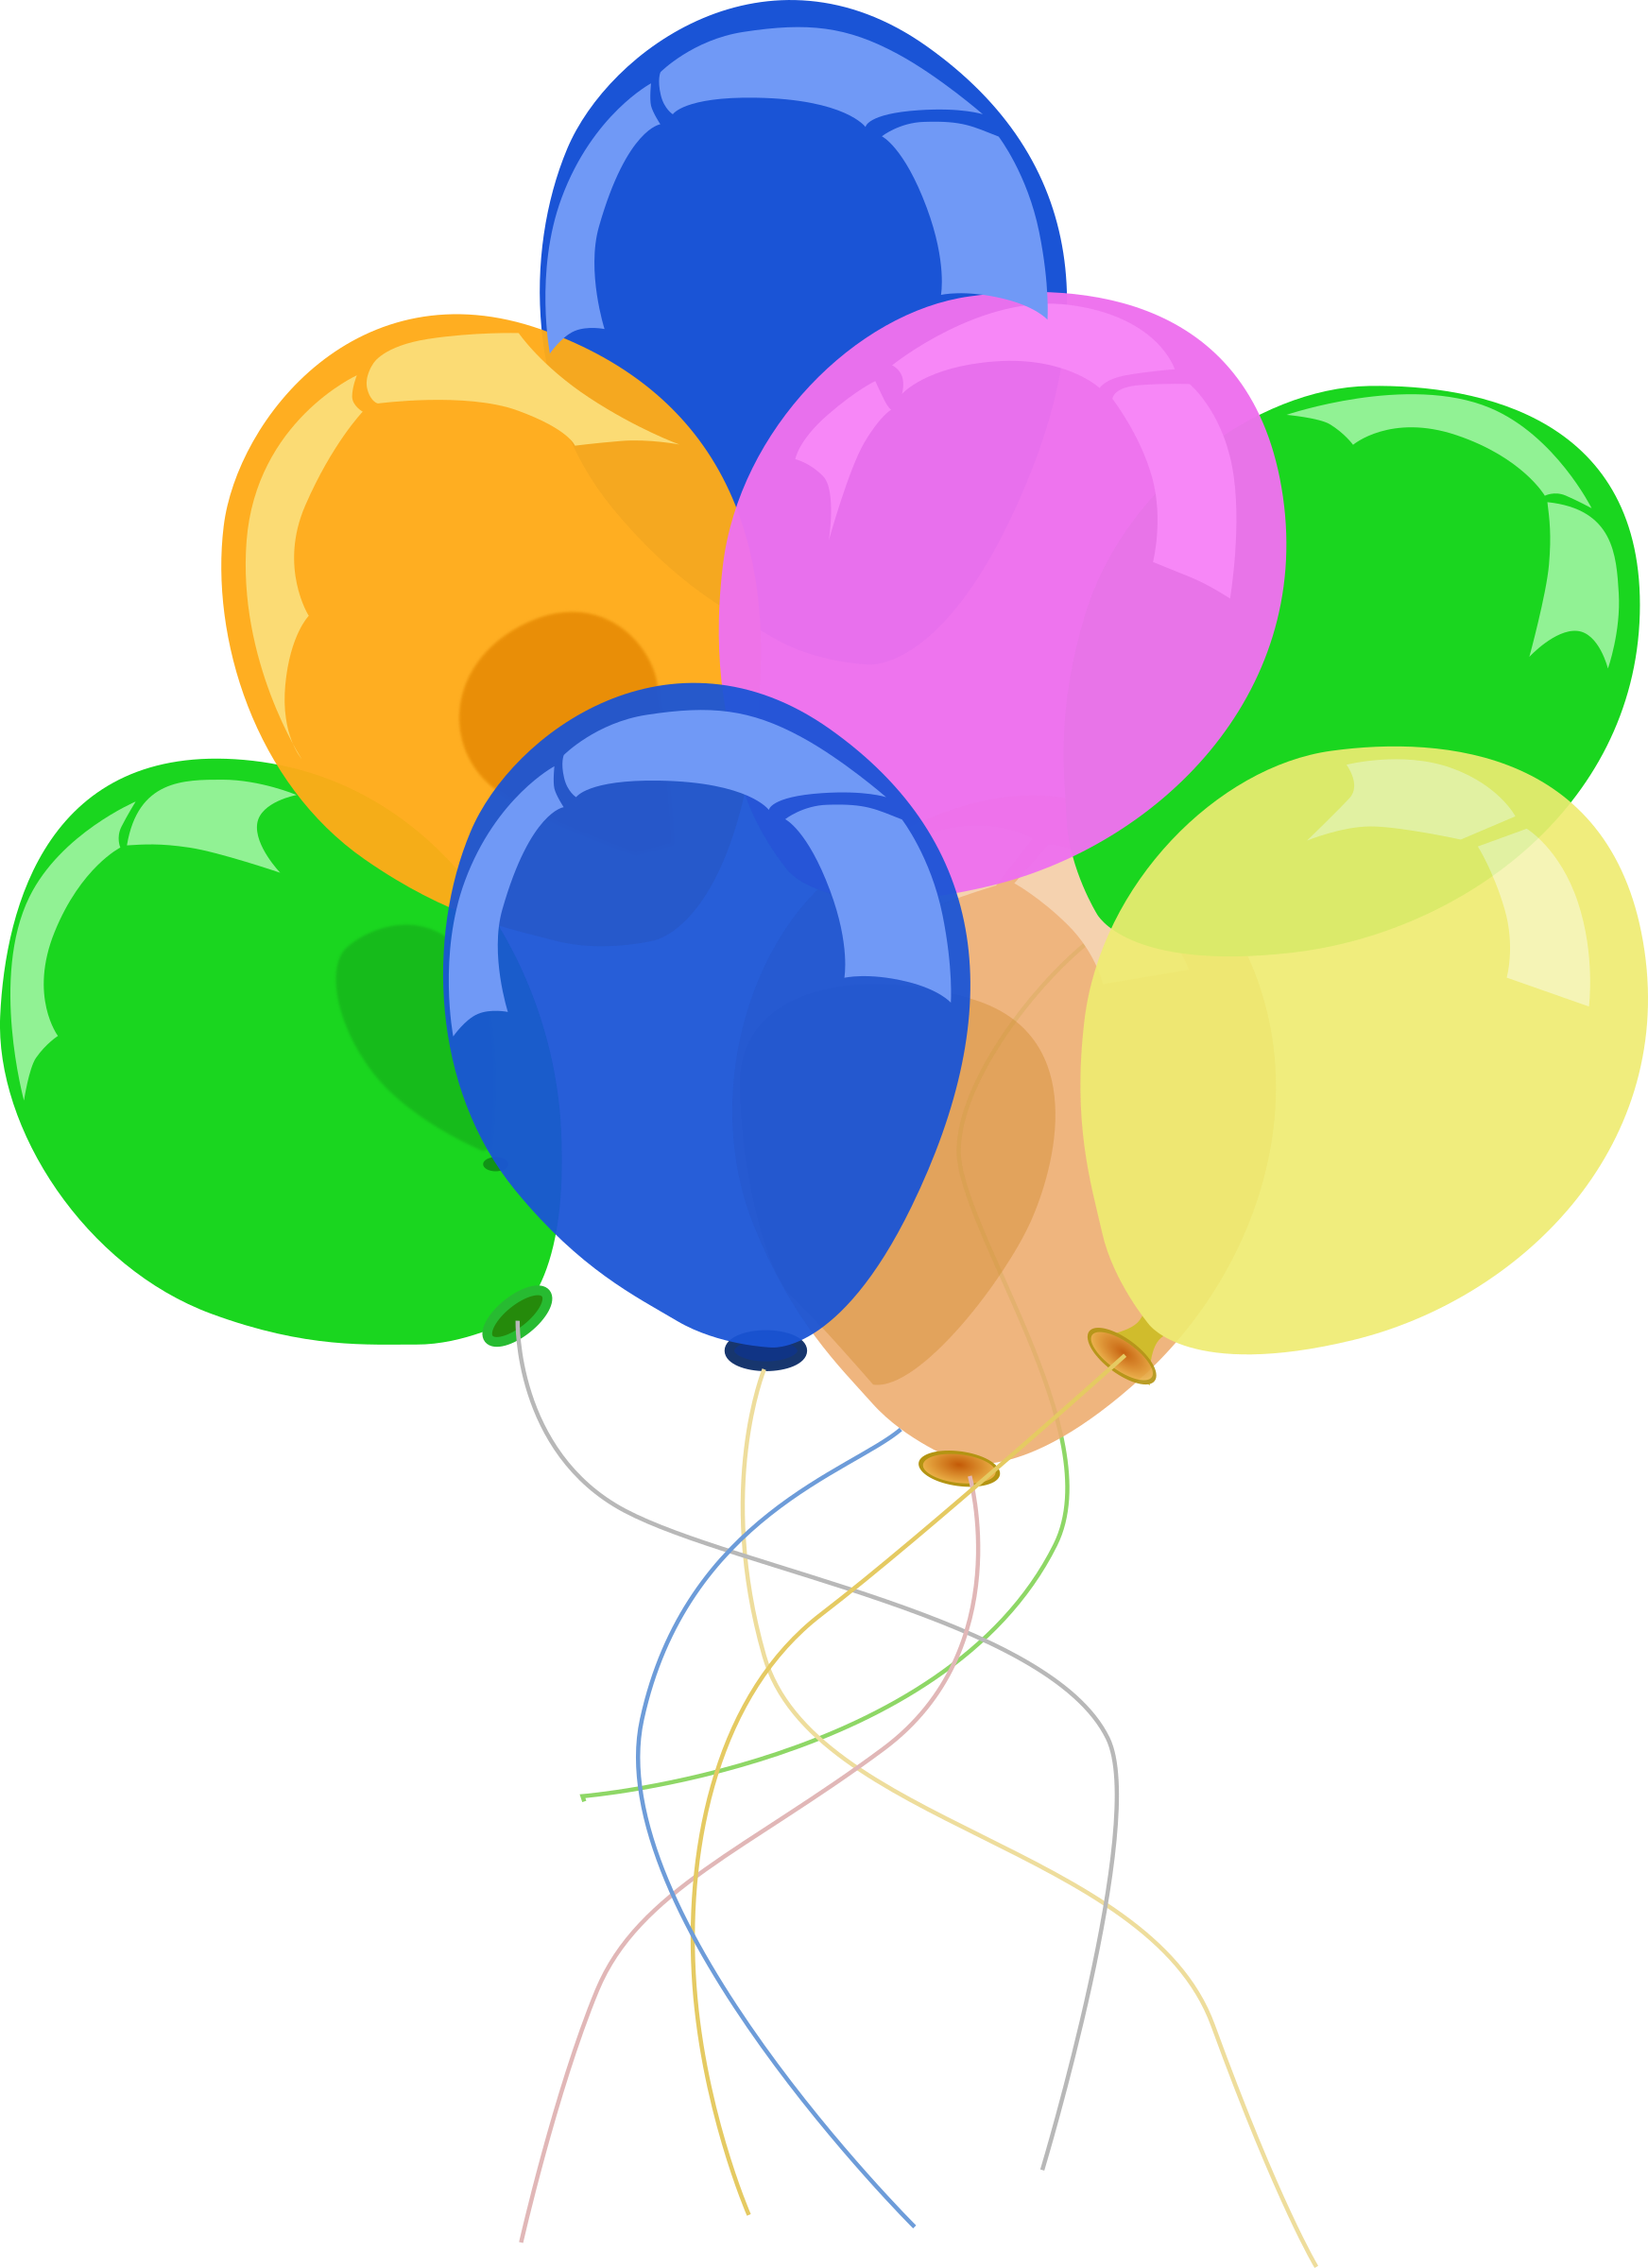 Luftballons big image png. Streamers clipart party favor